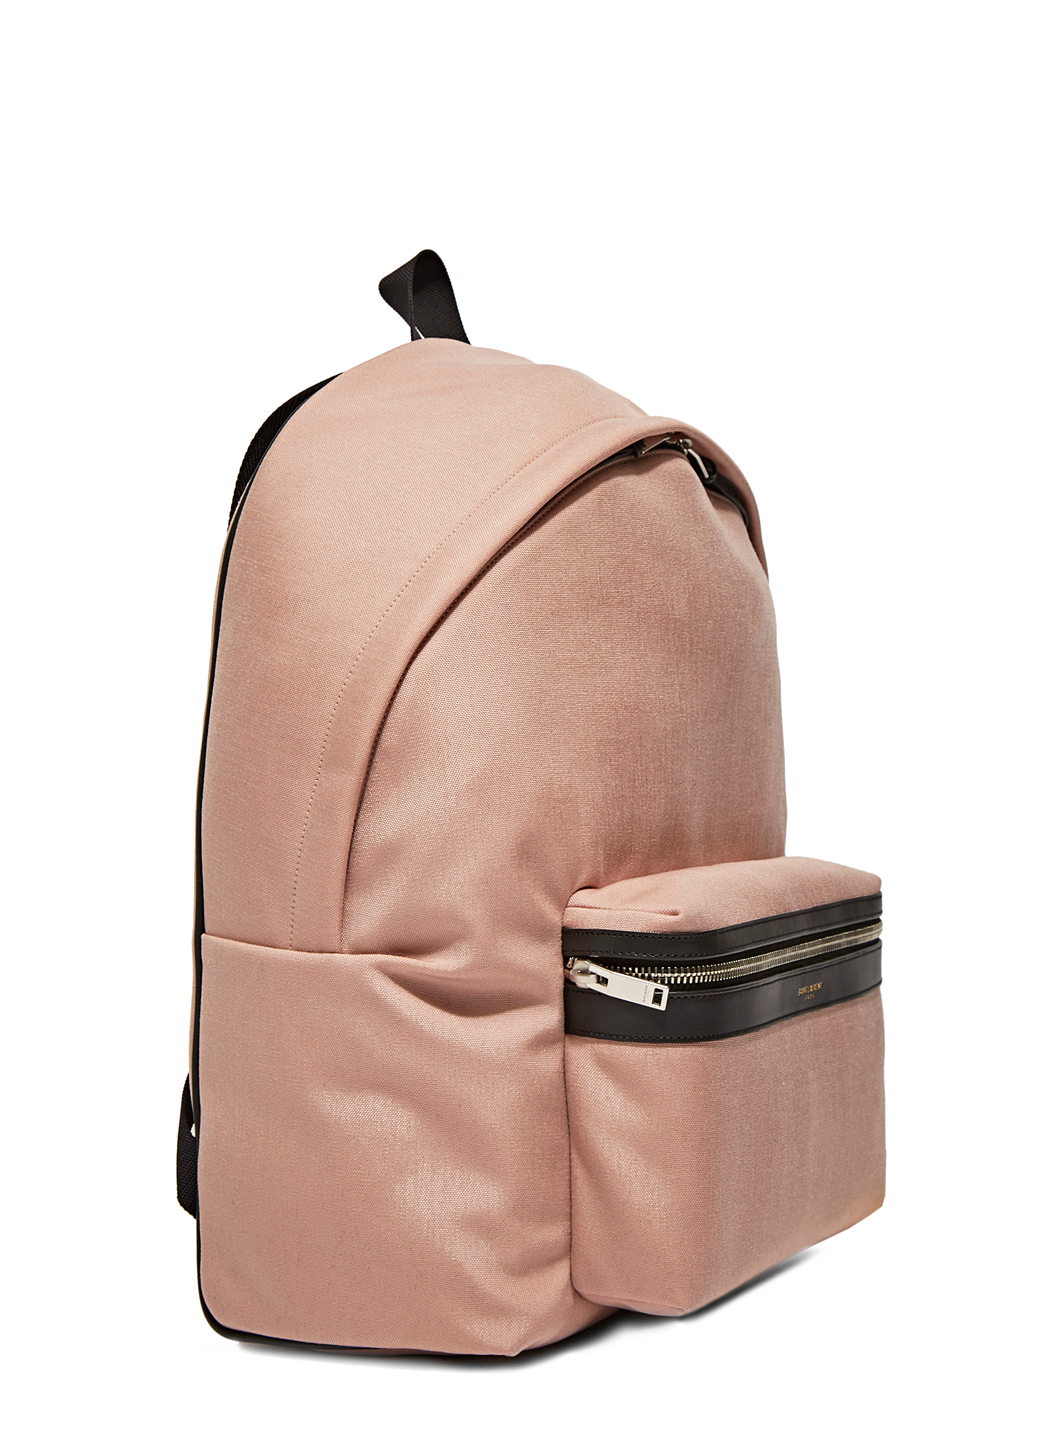 Saint Laurent SS16 Hunt Backpack in dusty pink